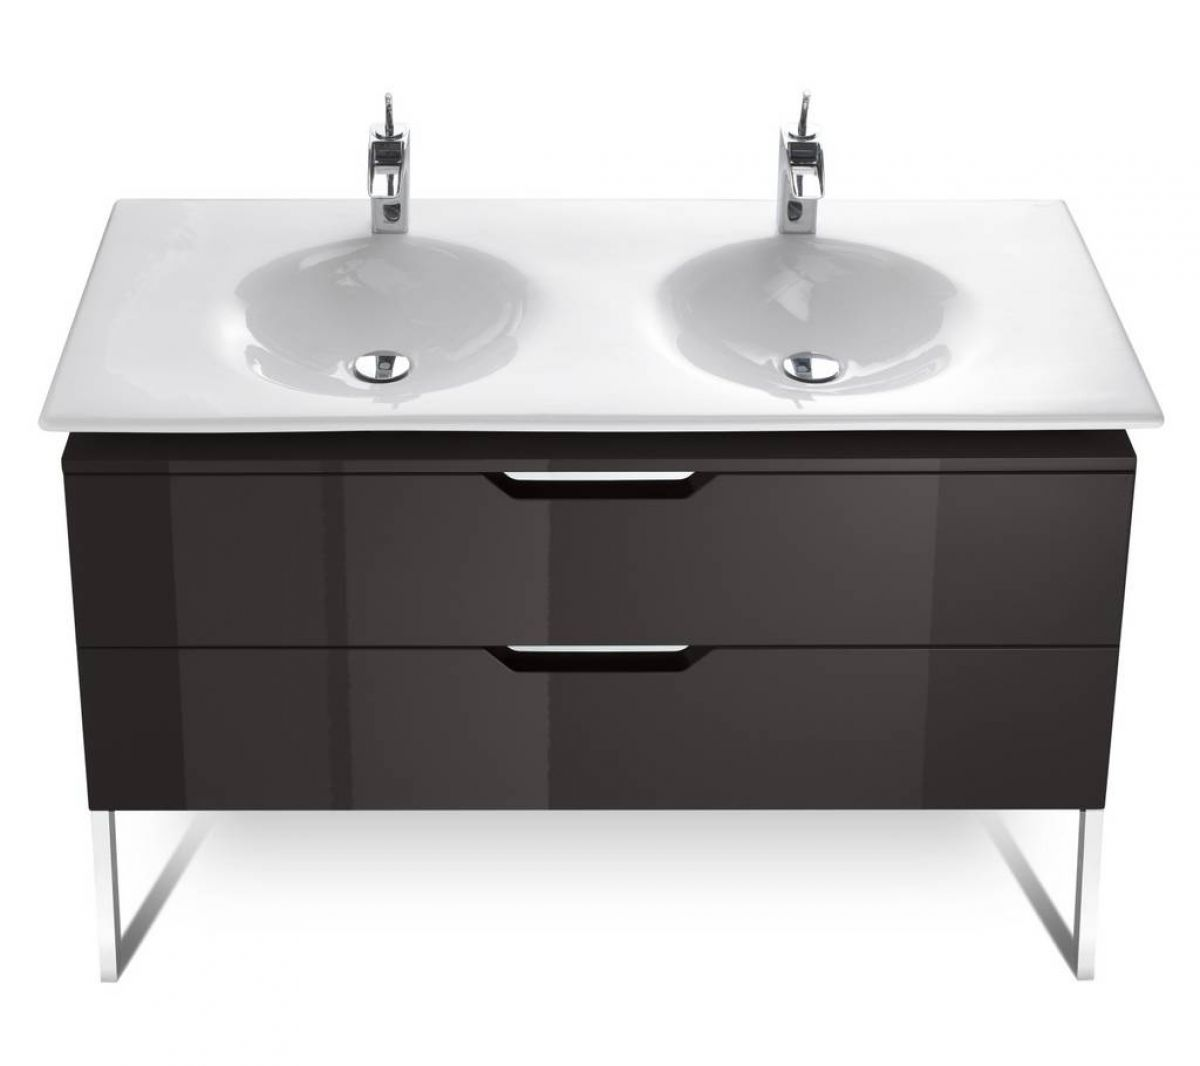 roca kalahari 1200mm double basin furniture unit uk